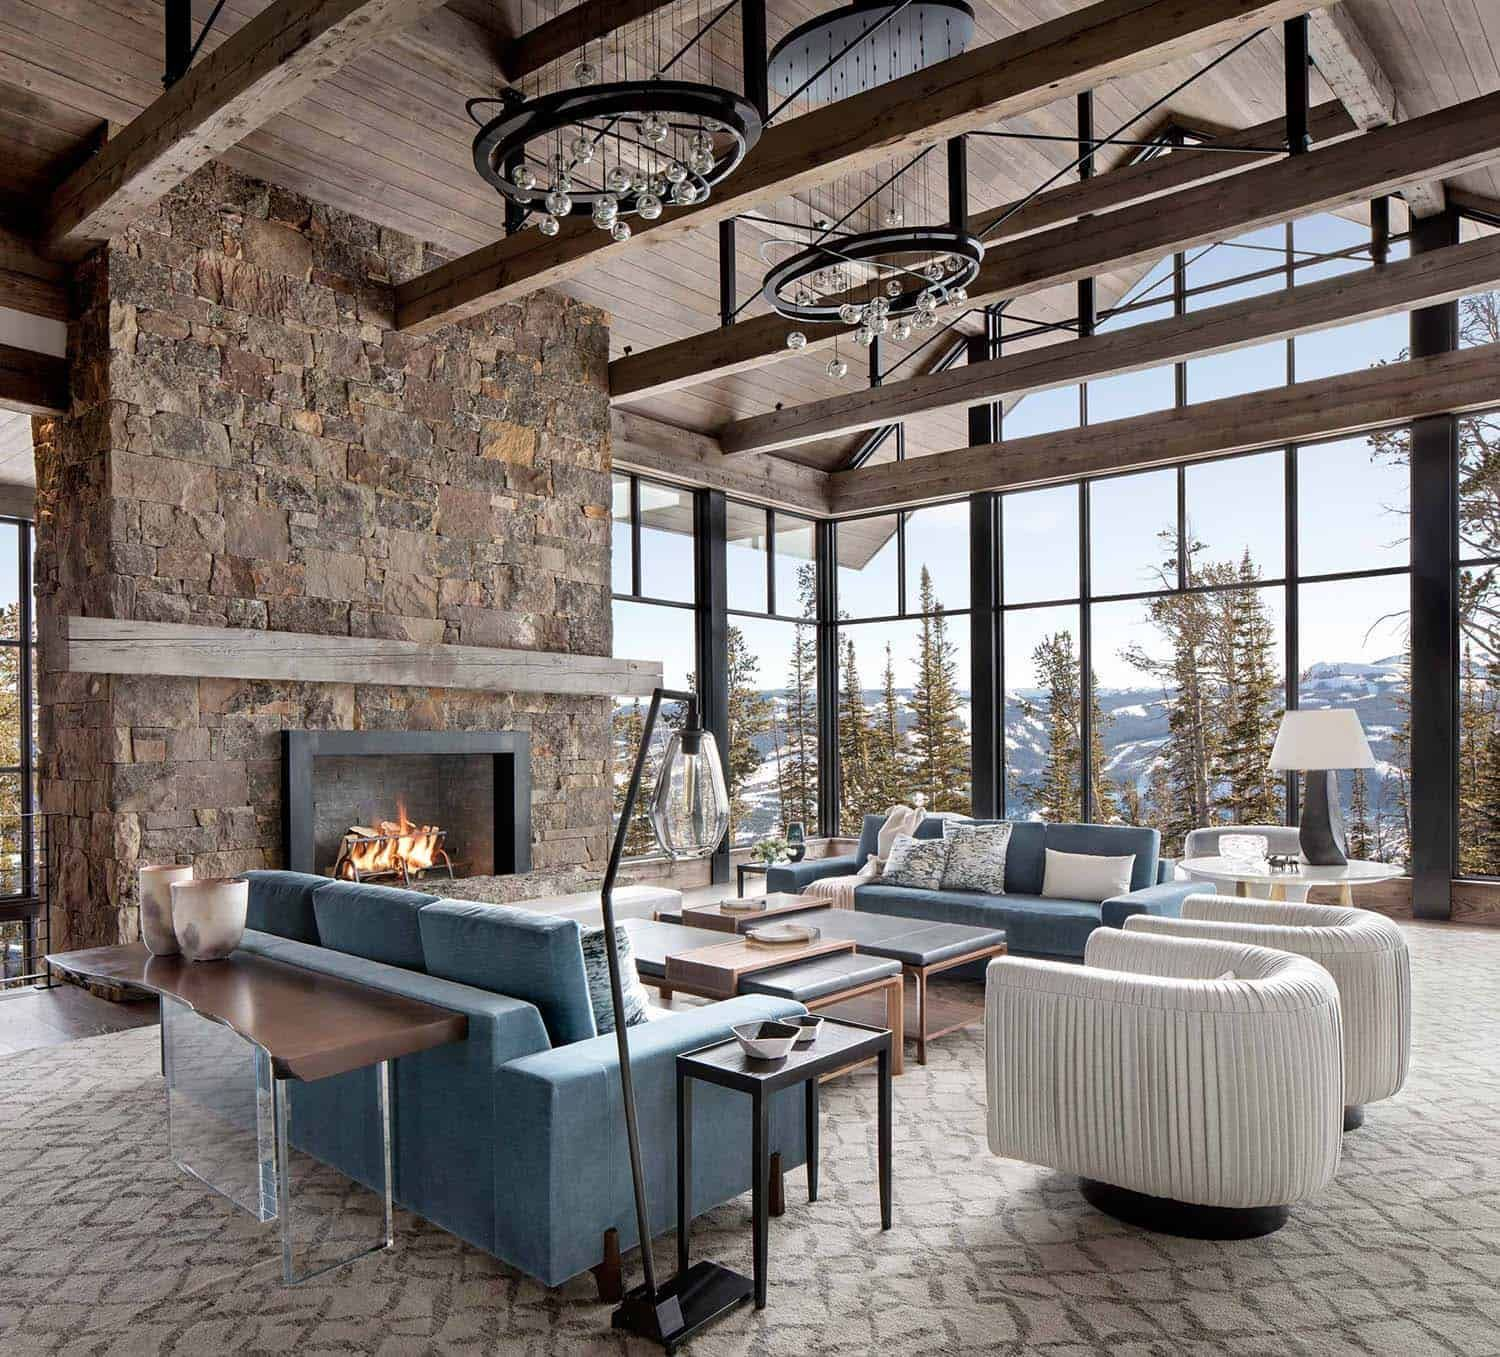 Modern Ski Home In Montana Boasts Views Of Snow Capped Mountains Cottage Interiors Cheap Home Decor House Interior